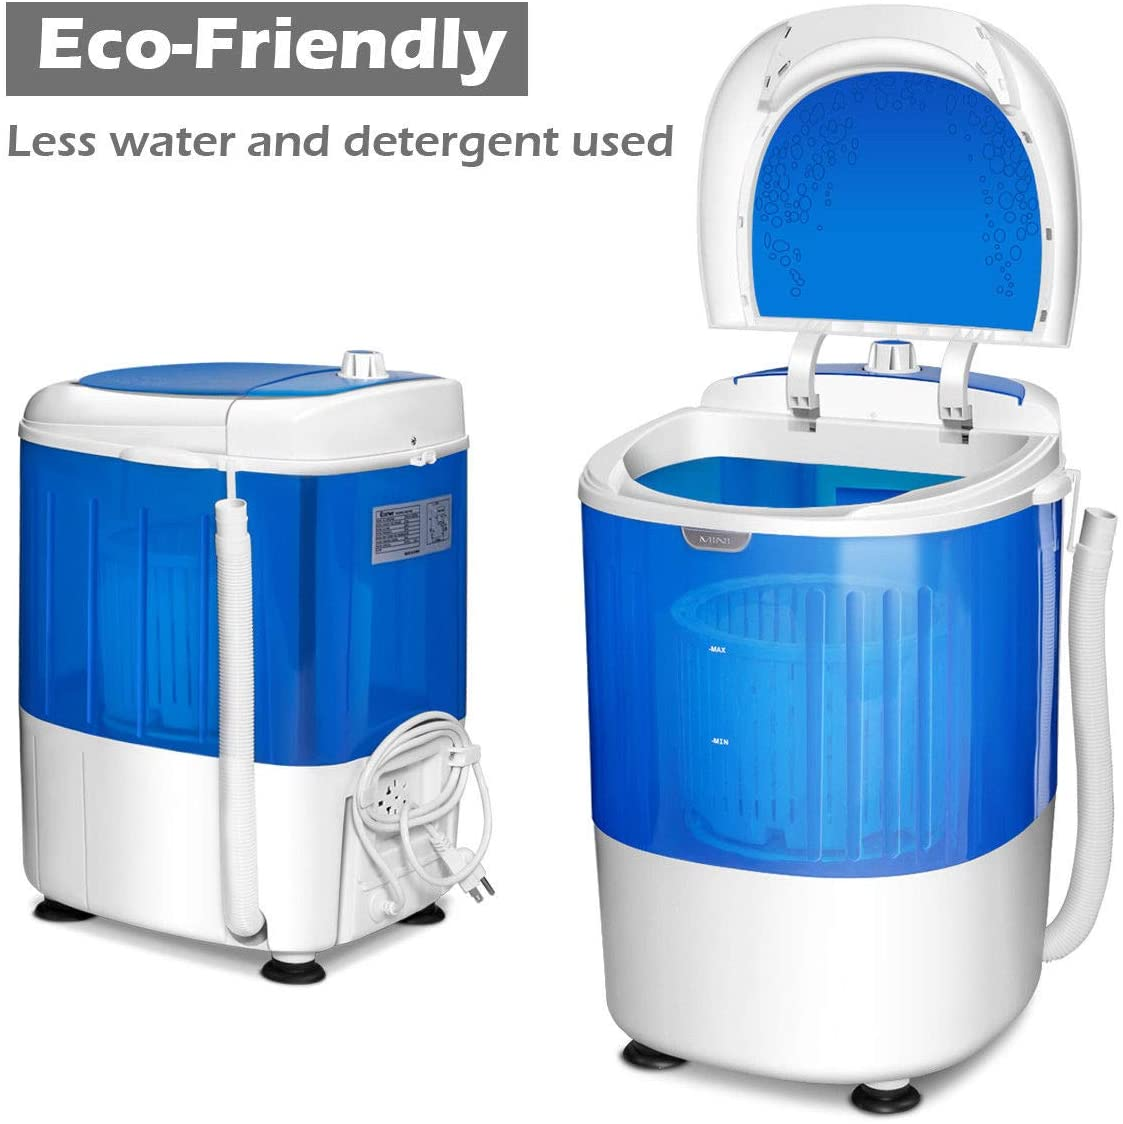 C:\Users\Ashan\Desktop\Amazon.com_ COSTWAY Mini Washing Machine with Spin Dryer, Electric Compact Laundry Machines Portable Durable Design Washer Energy Saving, Rotary Controller(Blue)_ Appliances_files\61+2eTYgOZL._AC_SL1200_.jpg